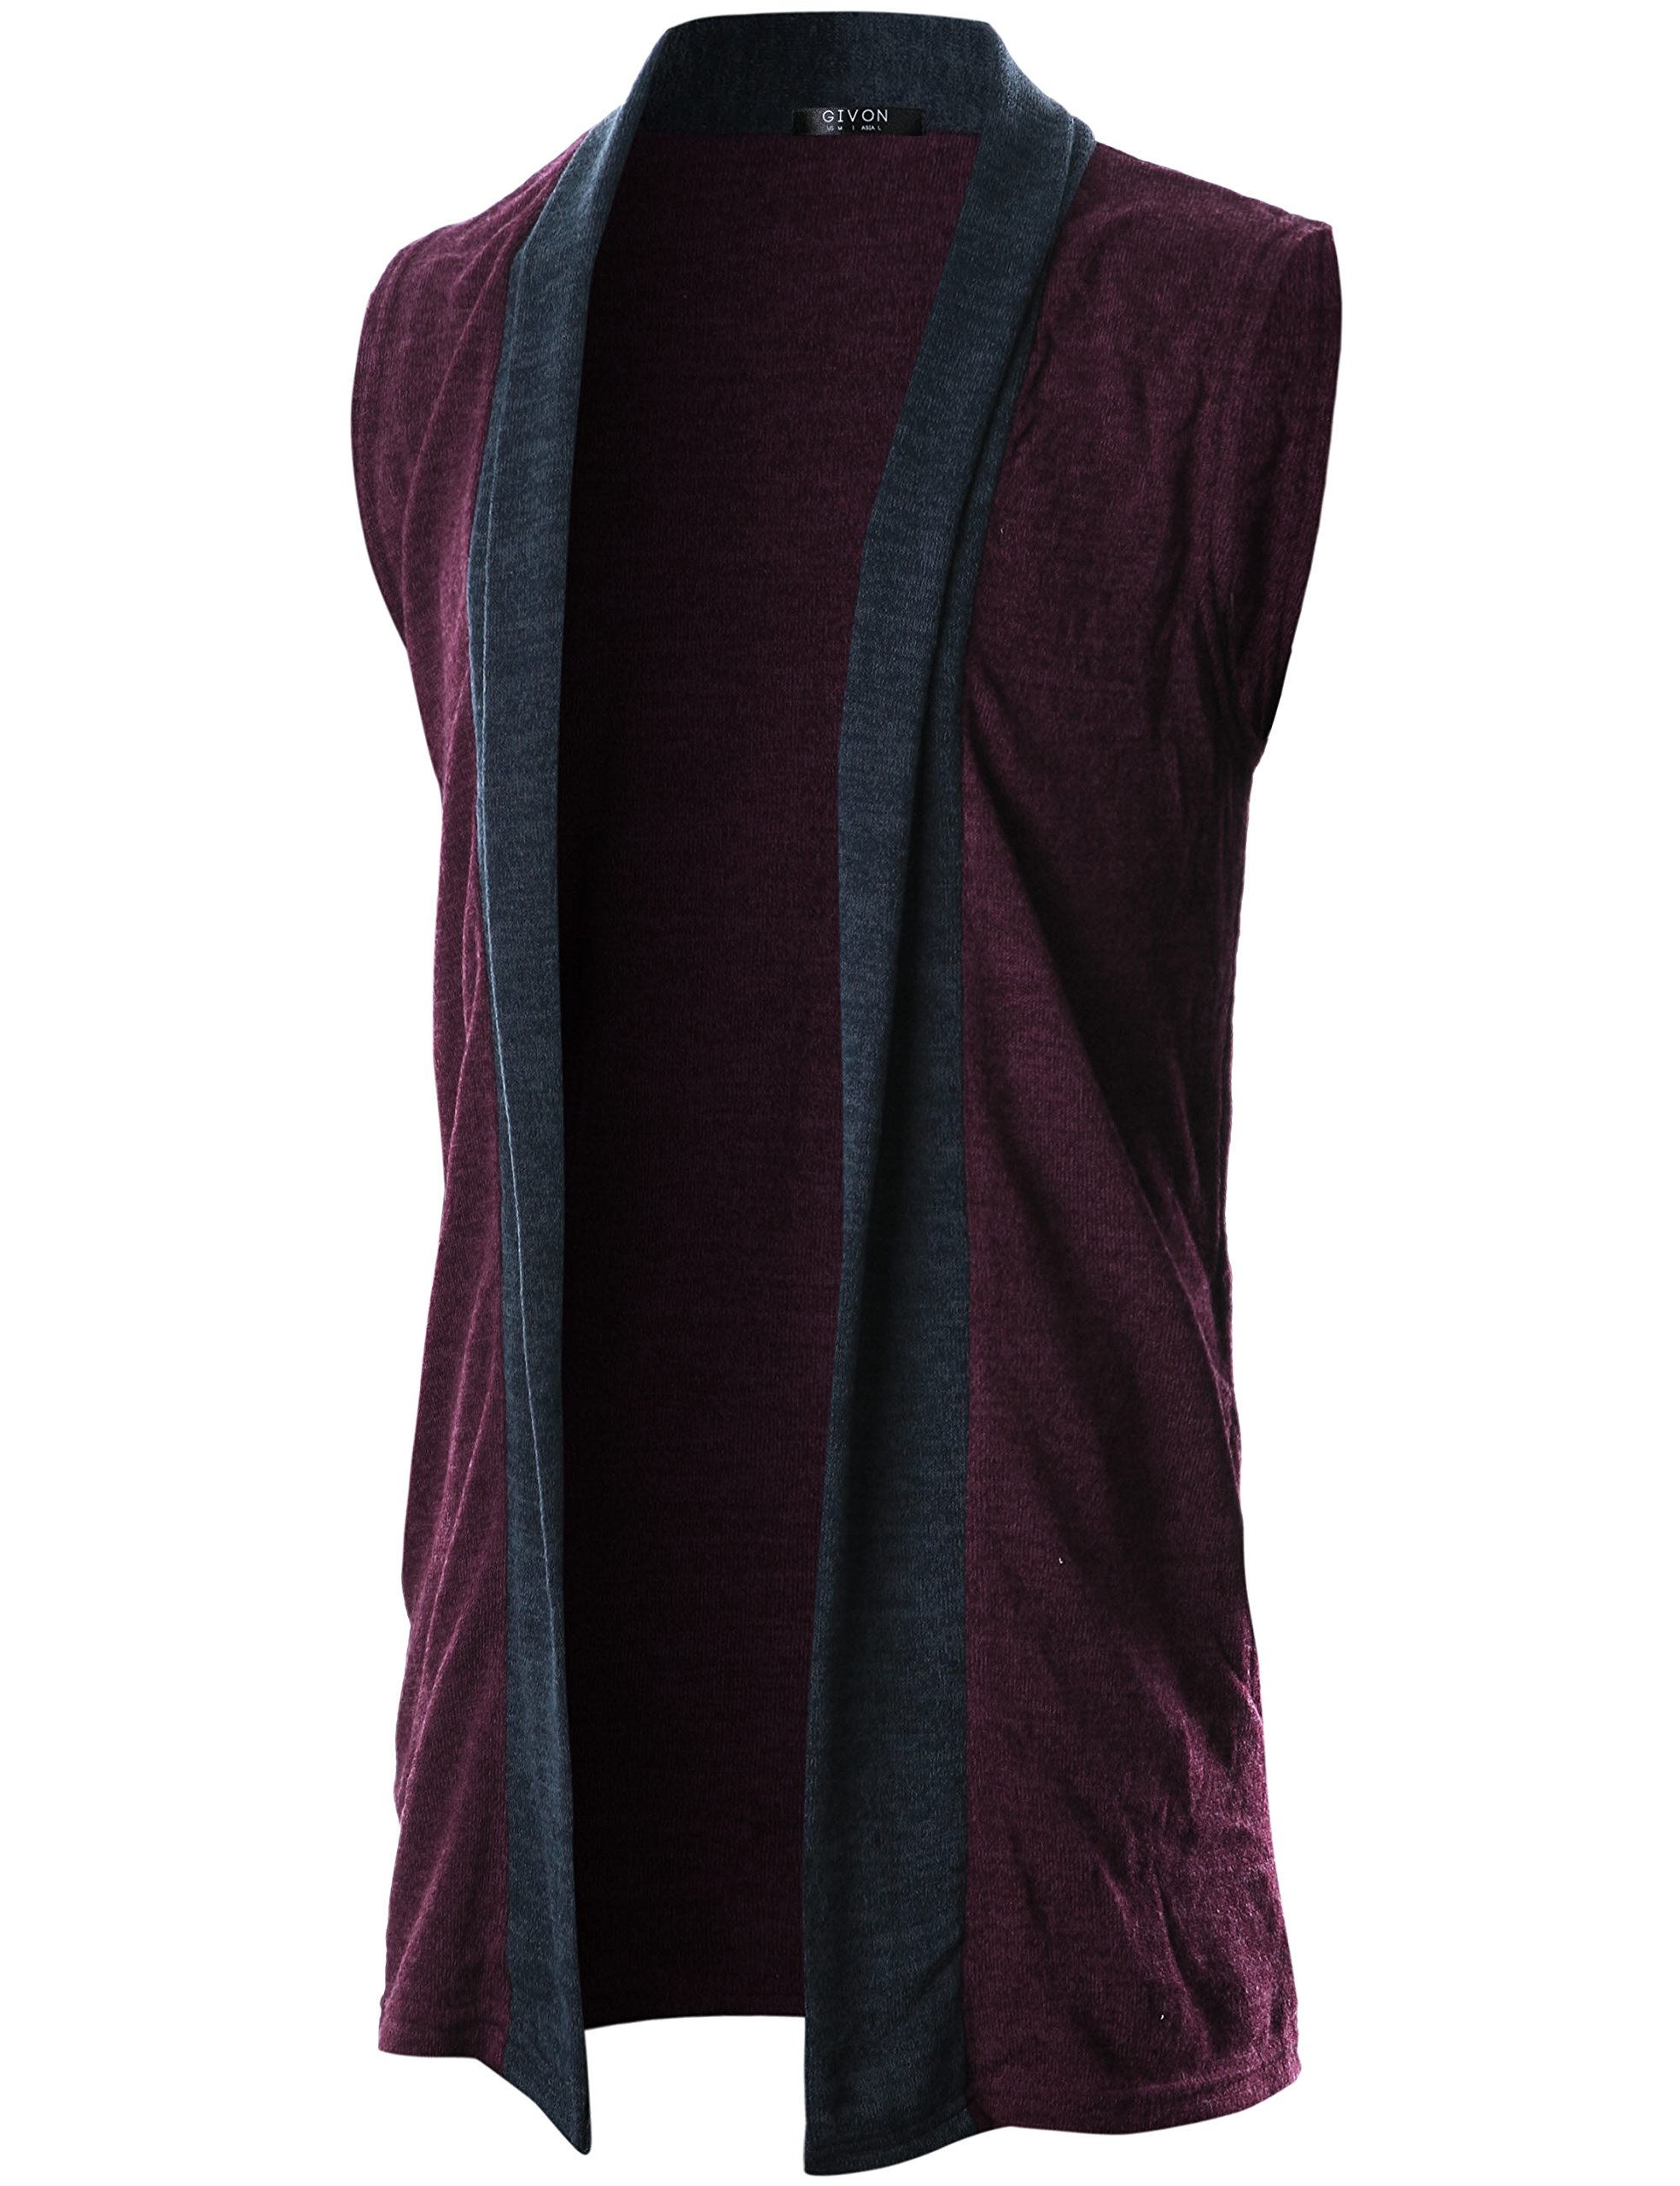 GIVON Mens Sleeveless Draped Open Front Shawl Collar Knitted Long Vest/DCC041-PURPLE-XXL